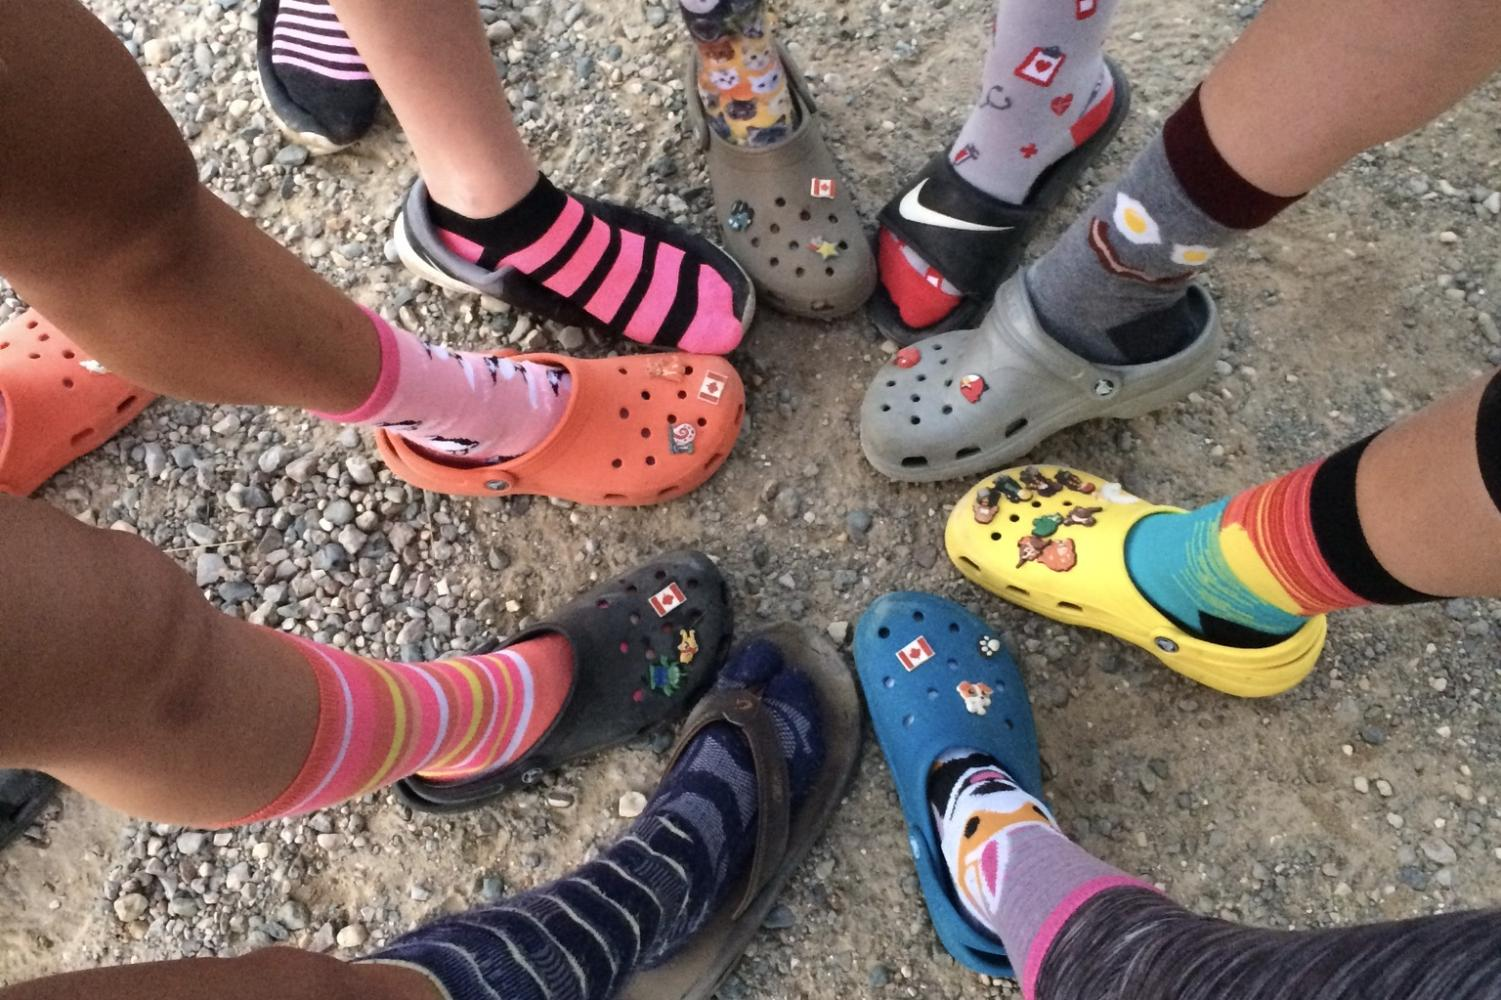 FHC womens' crew brings crocs back into style